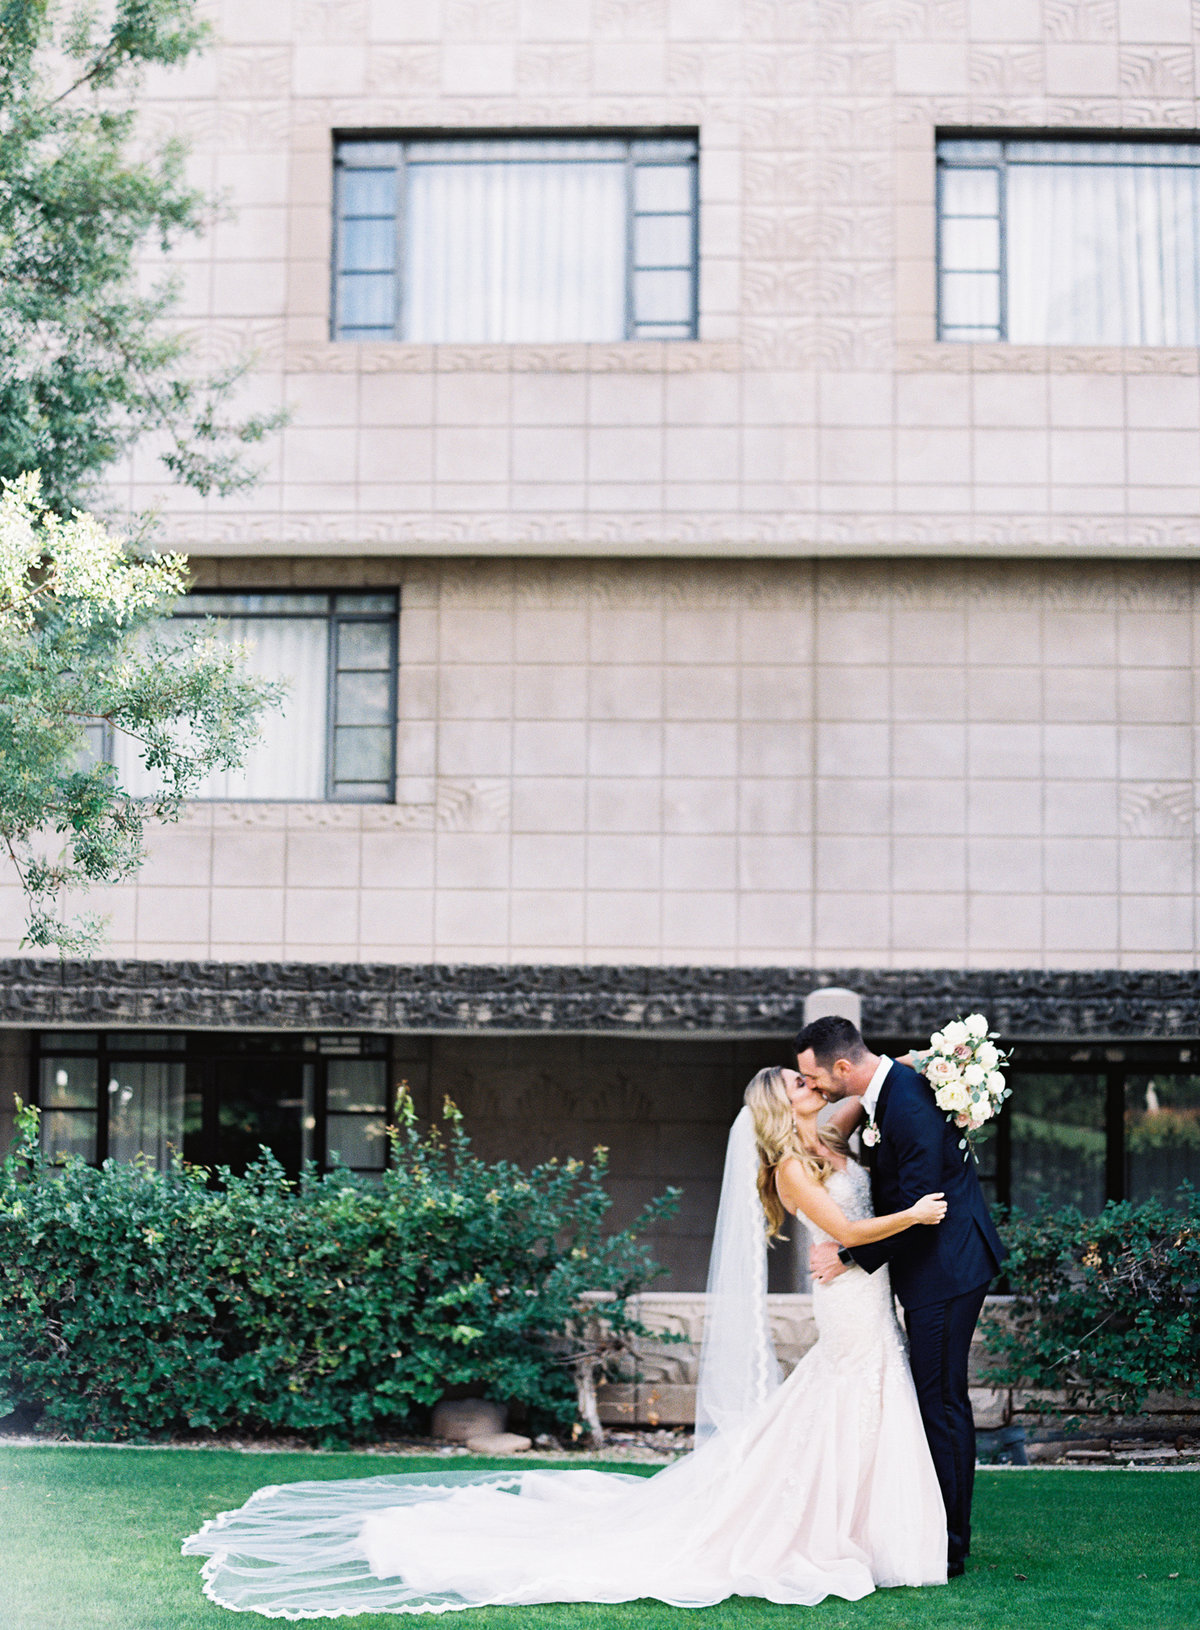 Arizona Biltmore Wedding - Mary Claire Photography-15